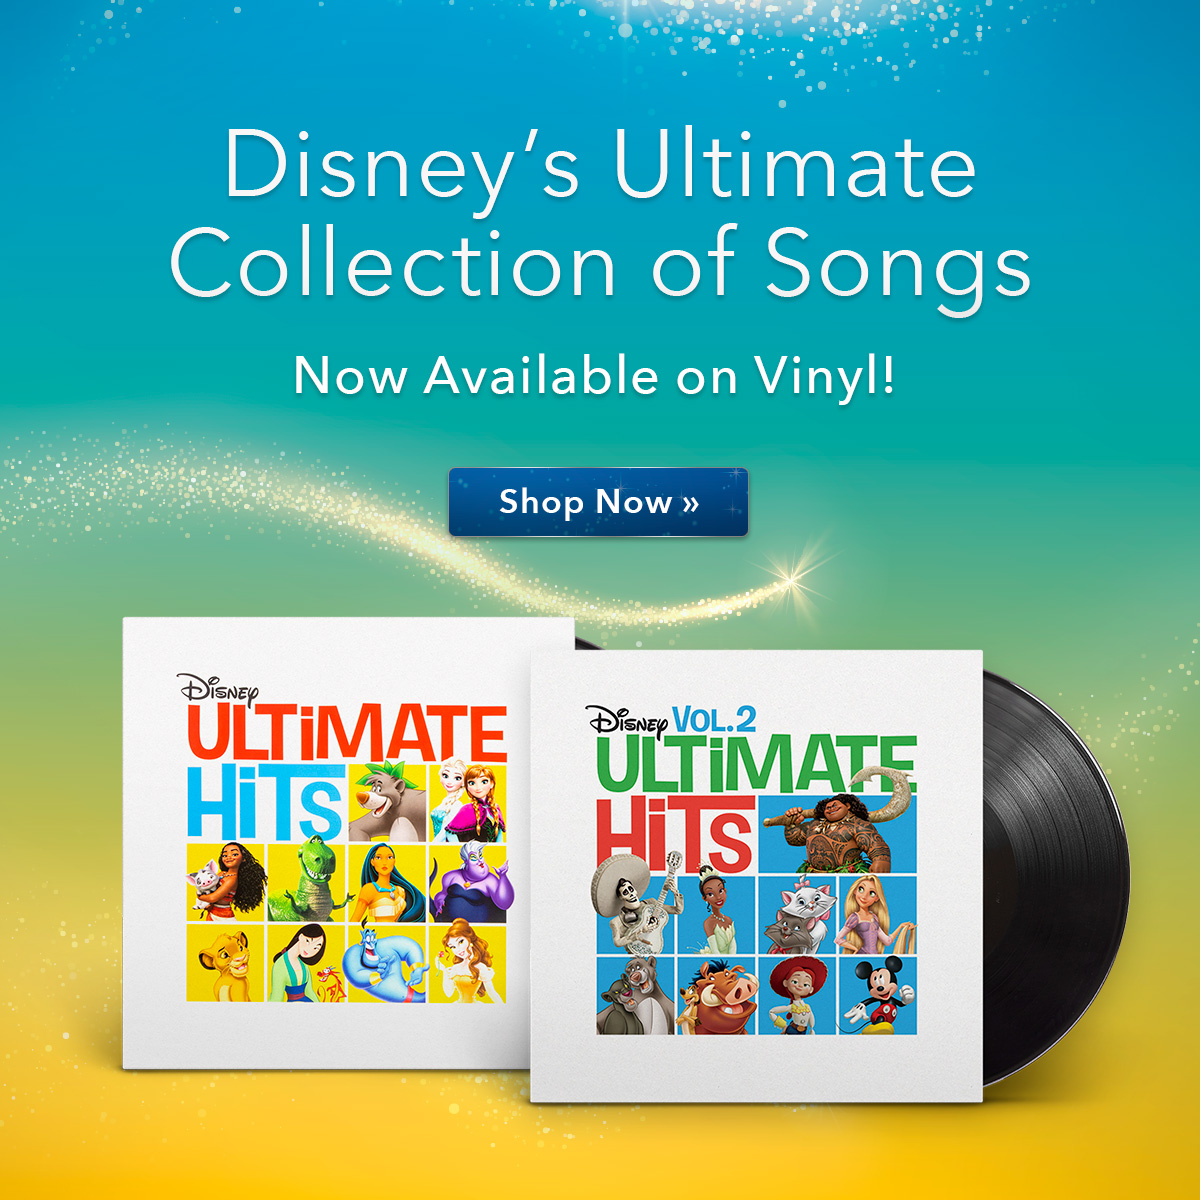 Ultimate Hits Volume 1 and 2!